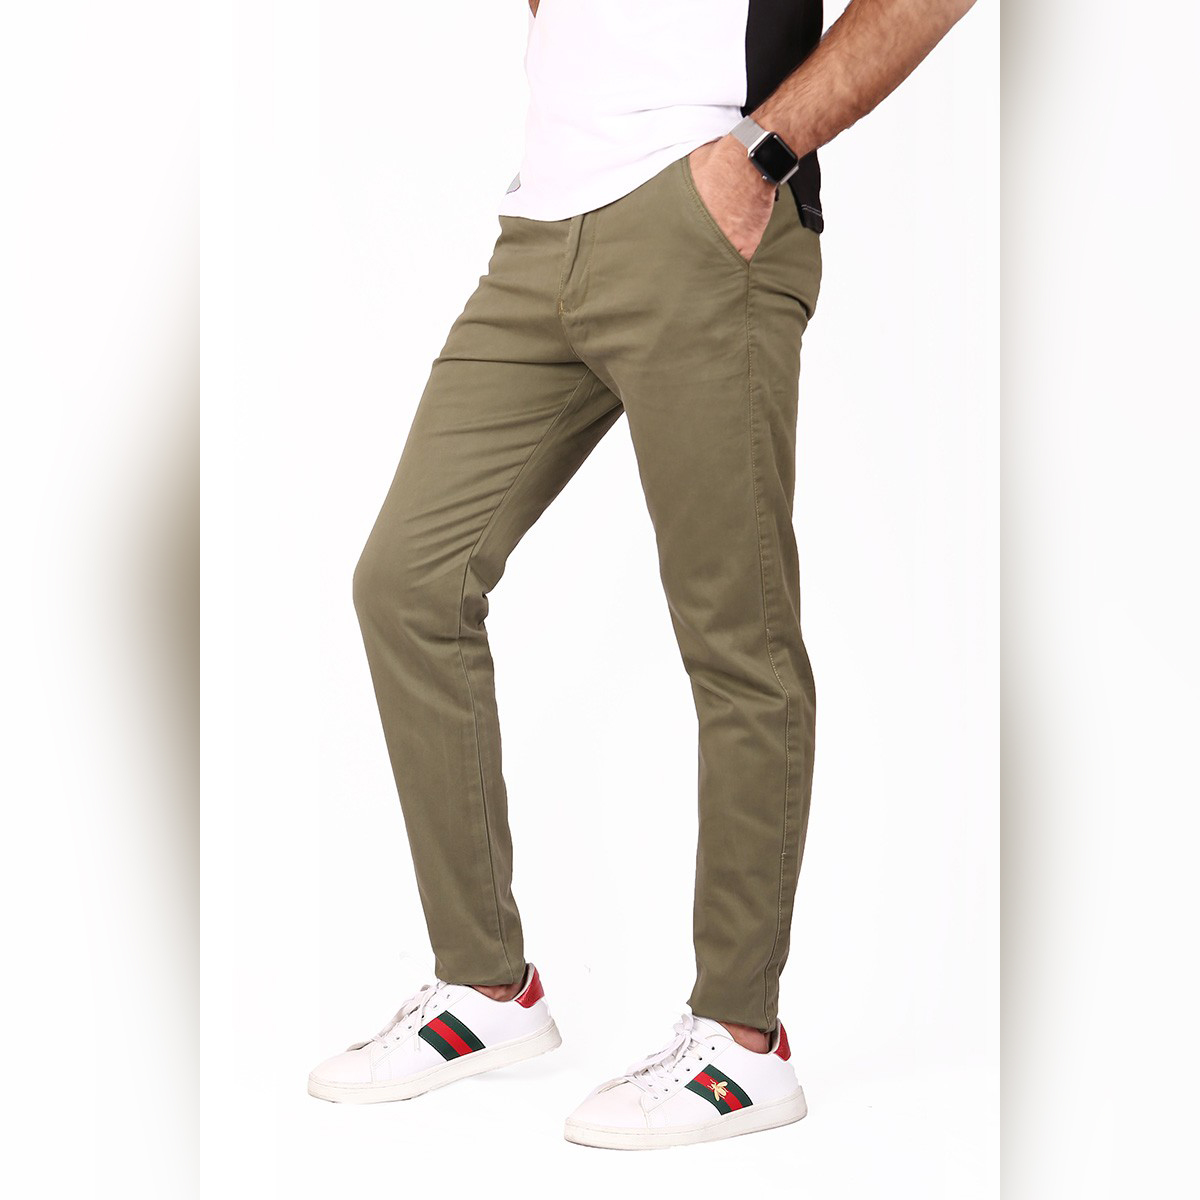 Men's Slim Fit Chino Cotton Pant - Olive Green